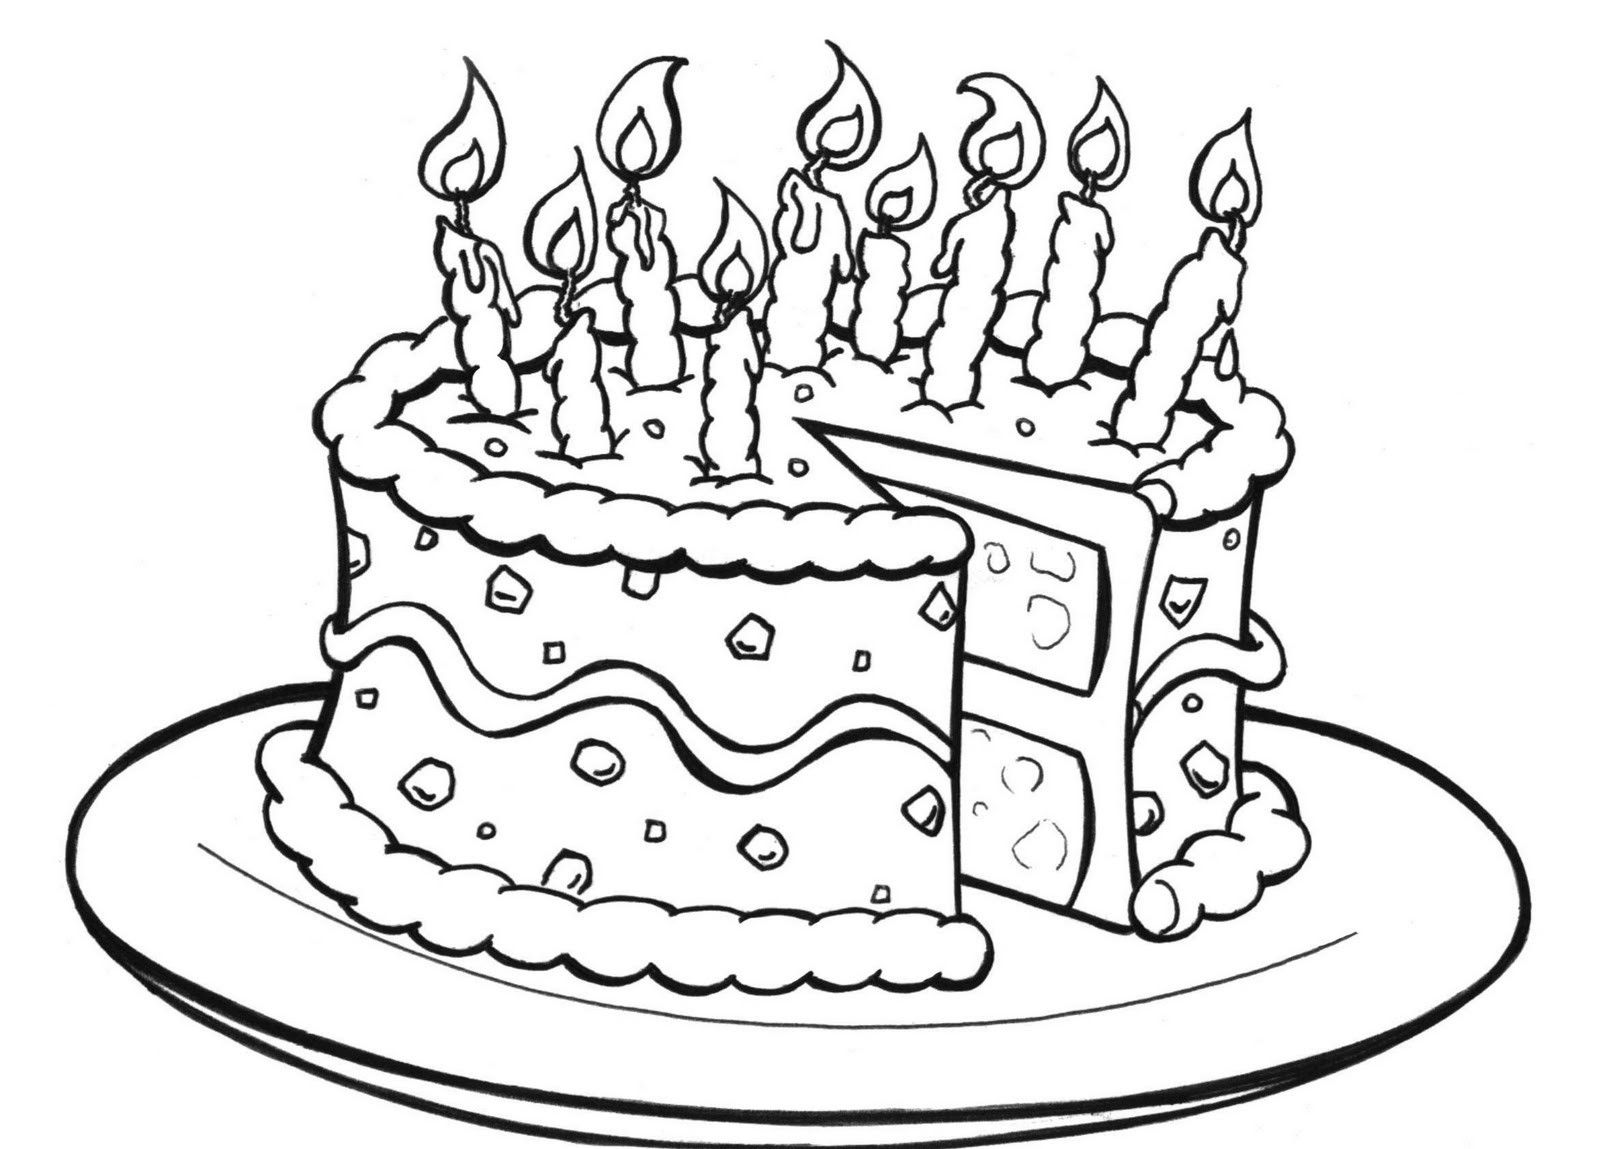 Pleasing Printable Birthday Cake Coloring Pages Kids Colorine Net 4965 Funny Birthday Cards Online Alyptdamsfinfo